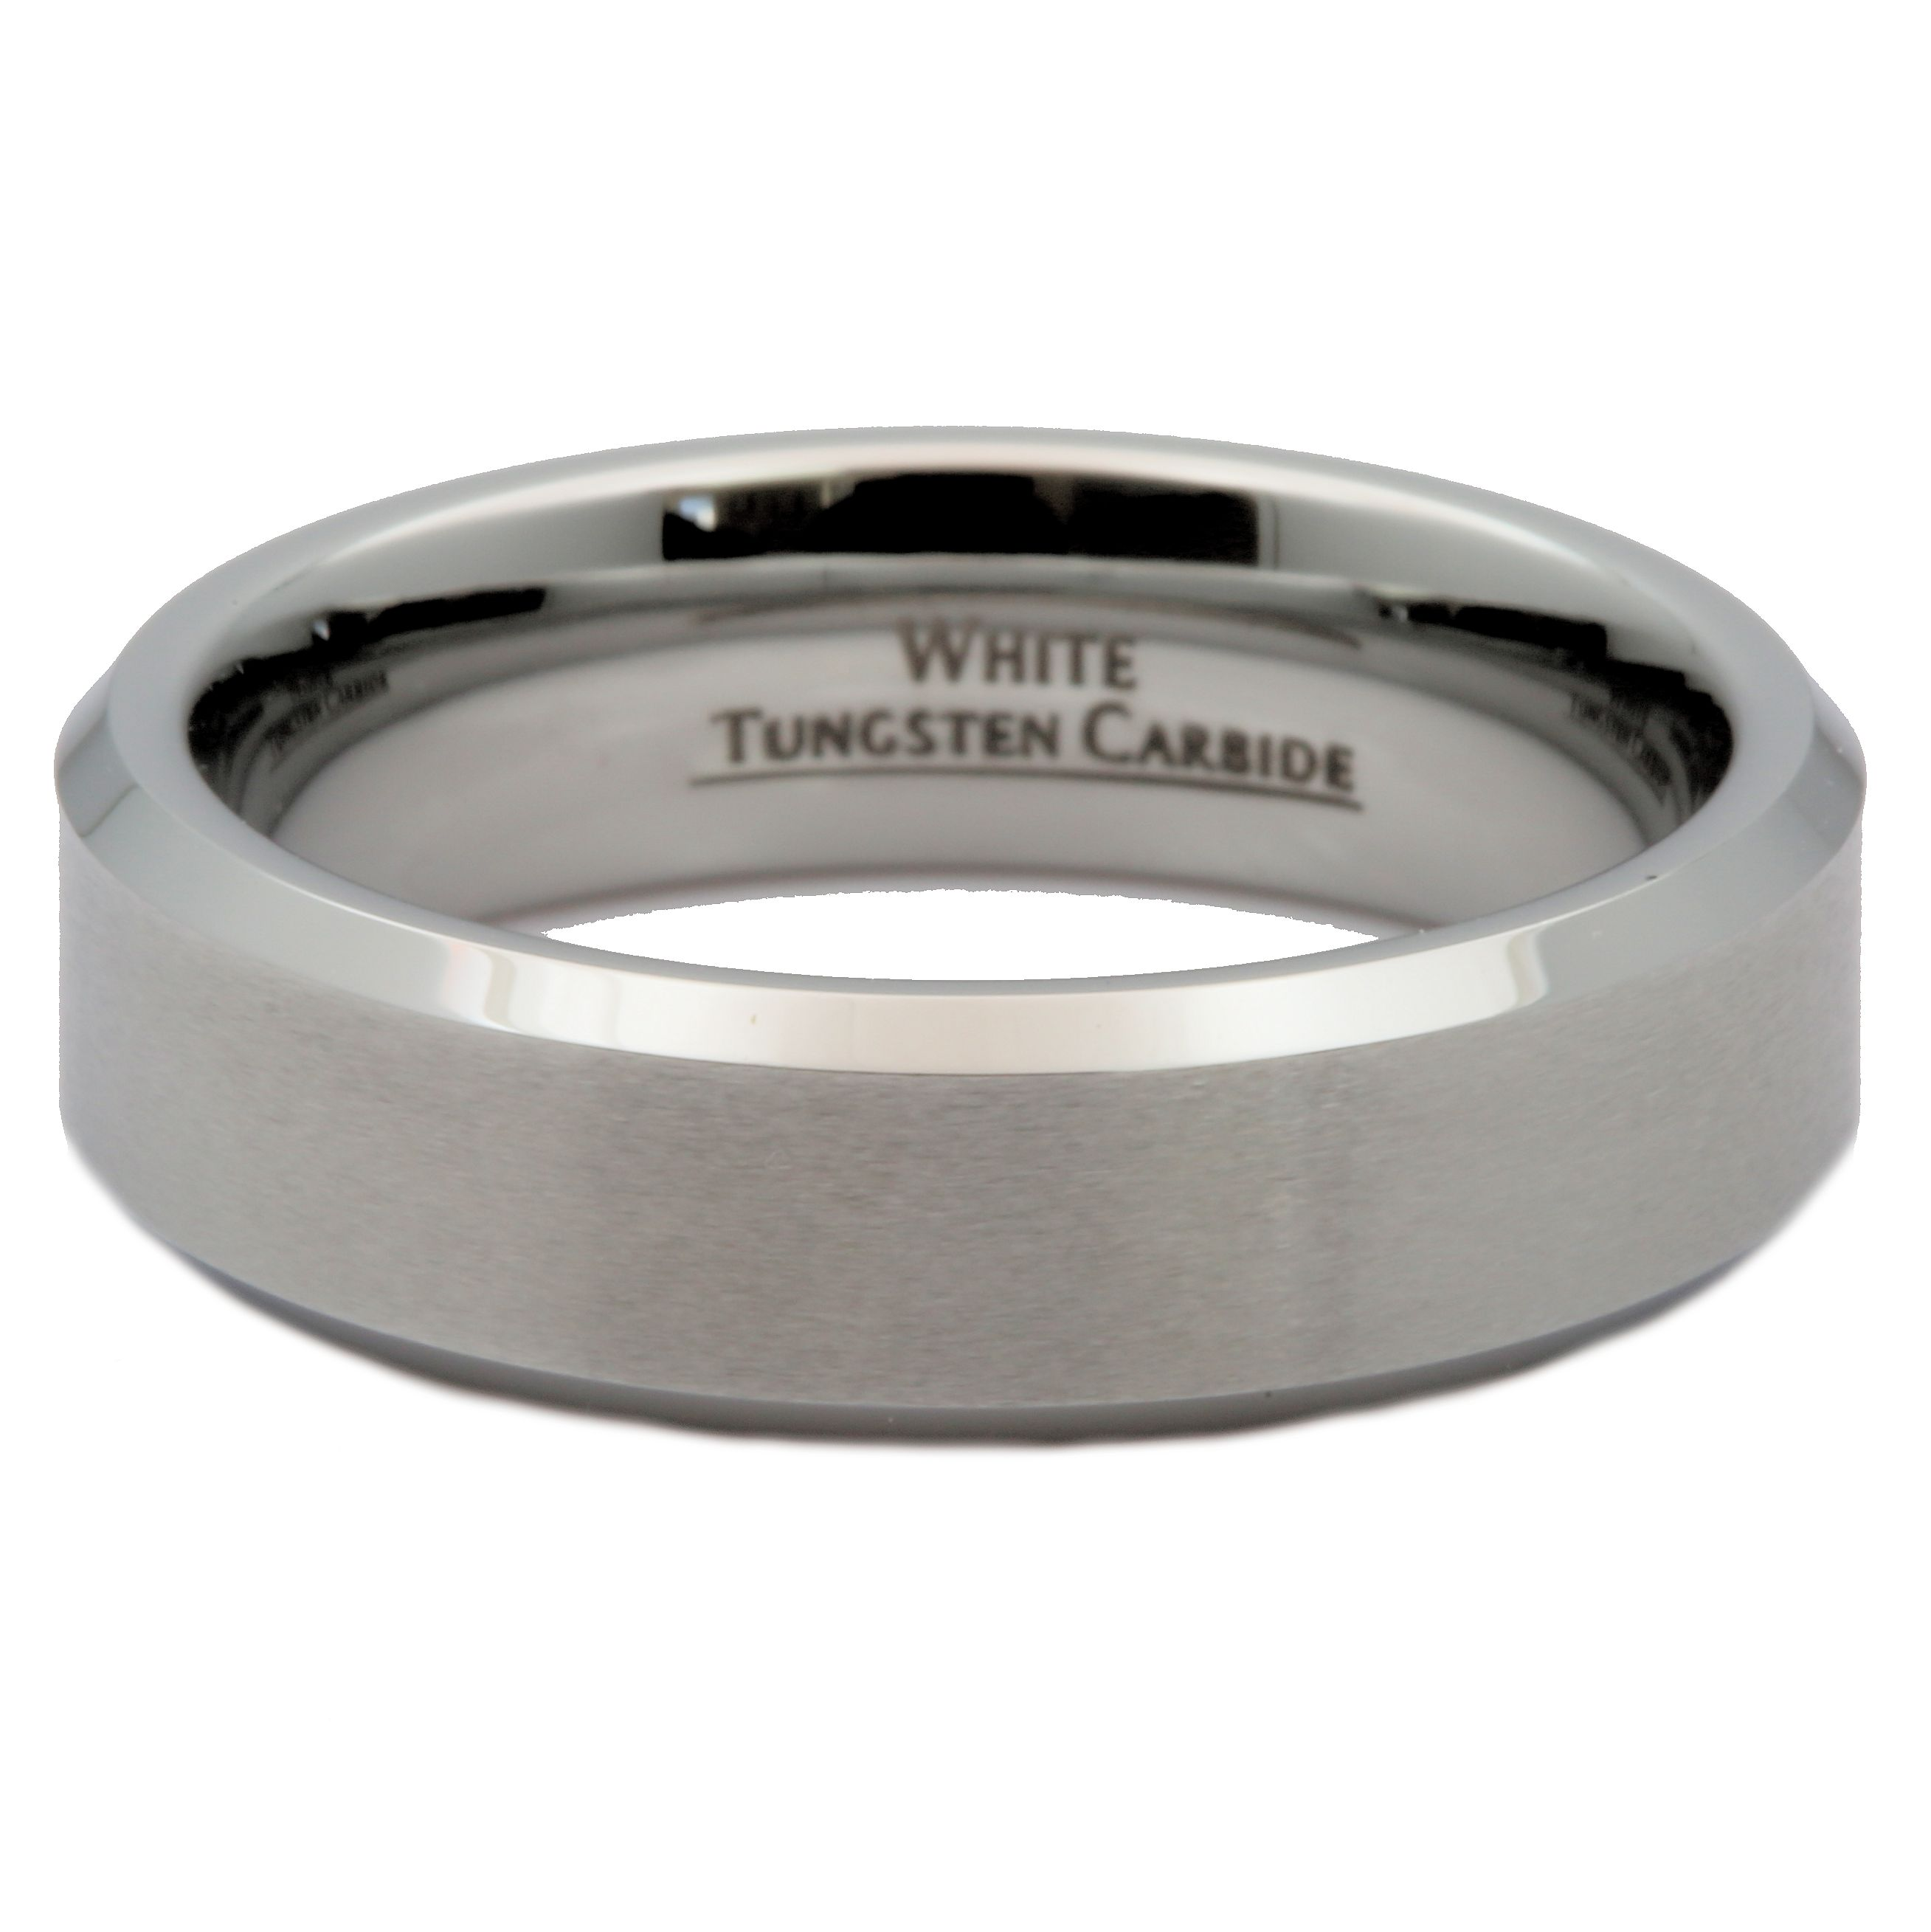 6mm-Brushed-White-Tungsten-Carbide-Wedding-Band-Polished-Edges-Ring thumbnail 9